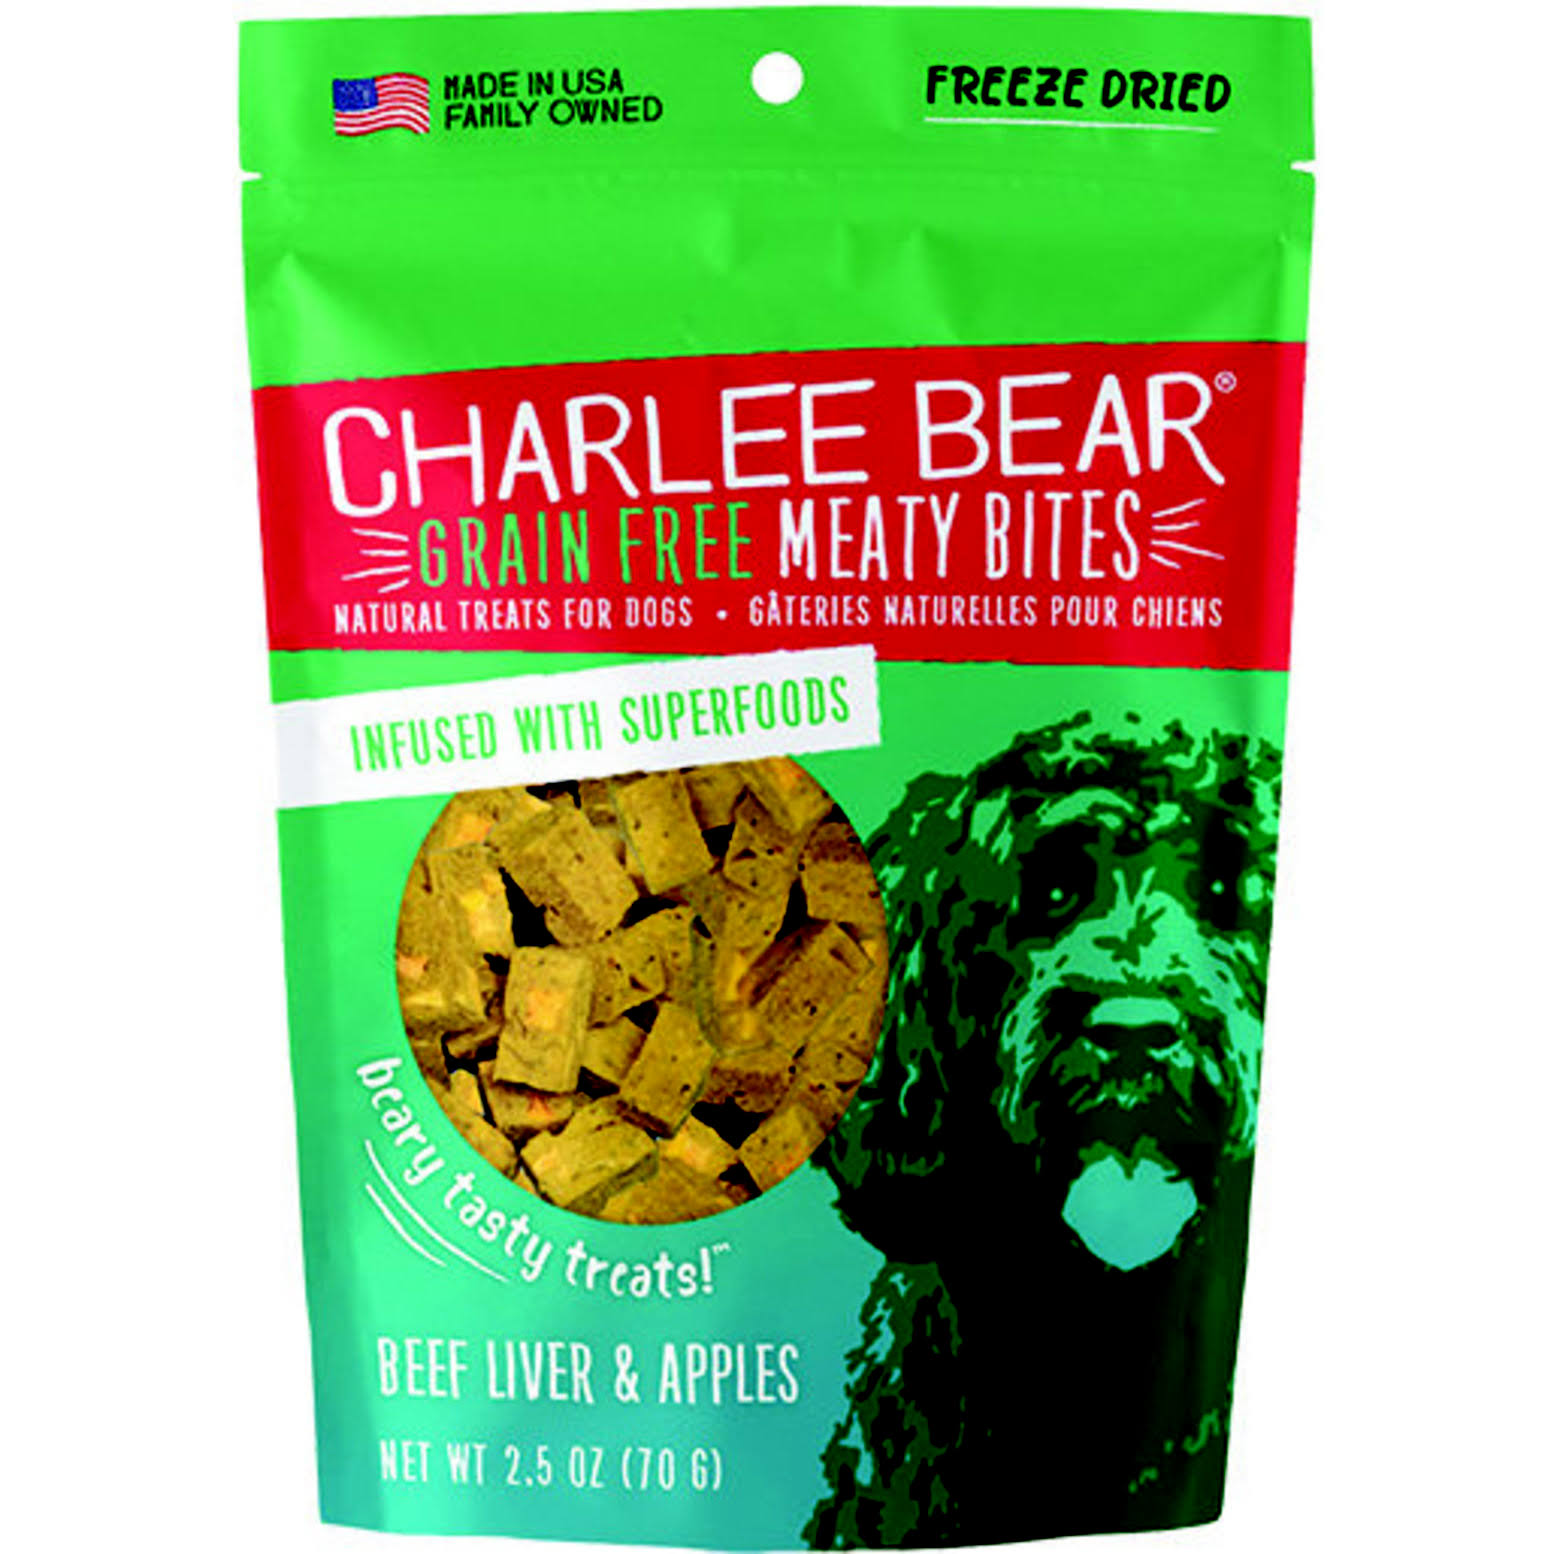 Charlee Bear Grain-Free Meaty Bites Dog Treats 2.5oz Beef & Apple